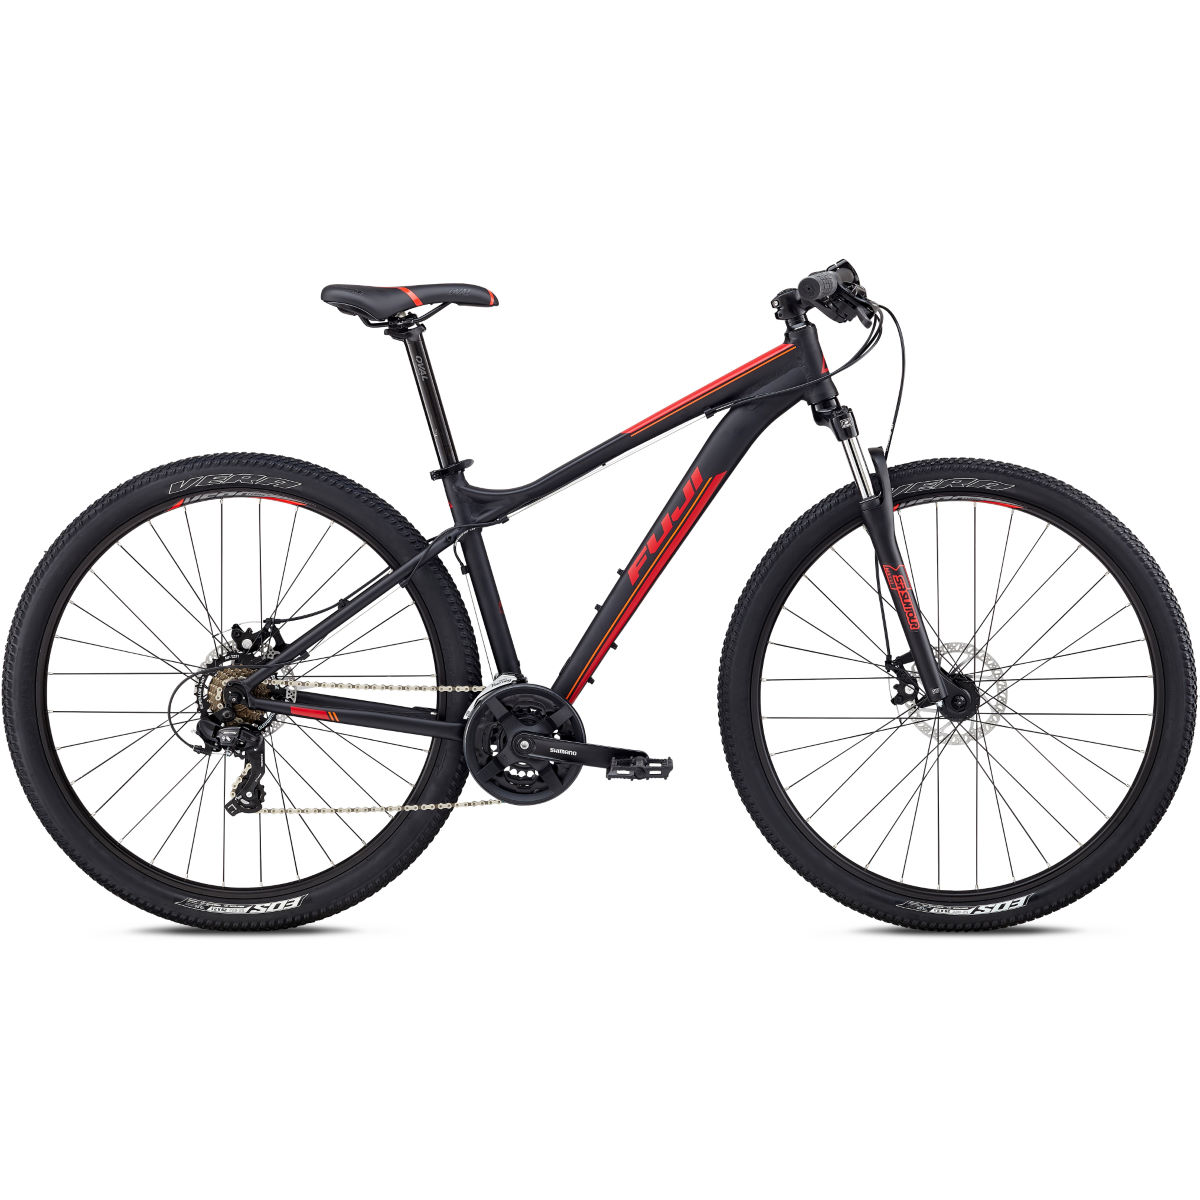 VTT semi-rigide Fuji Nevada 29 1.9 - 43cm(17'') Stock Bike